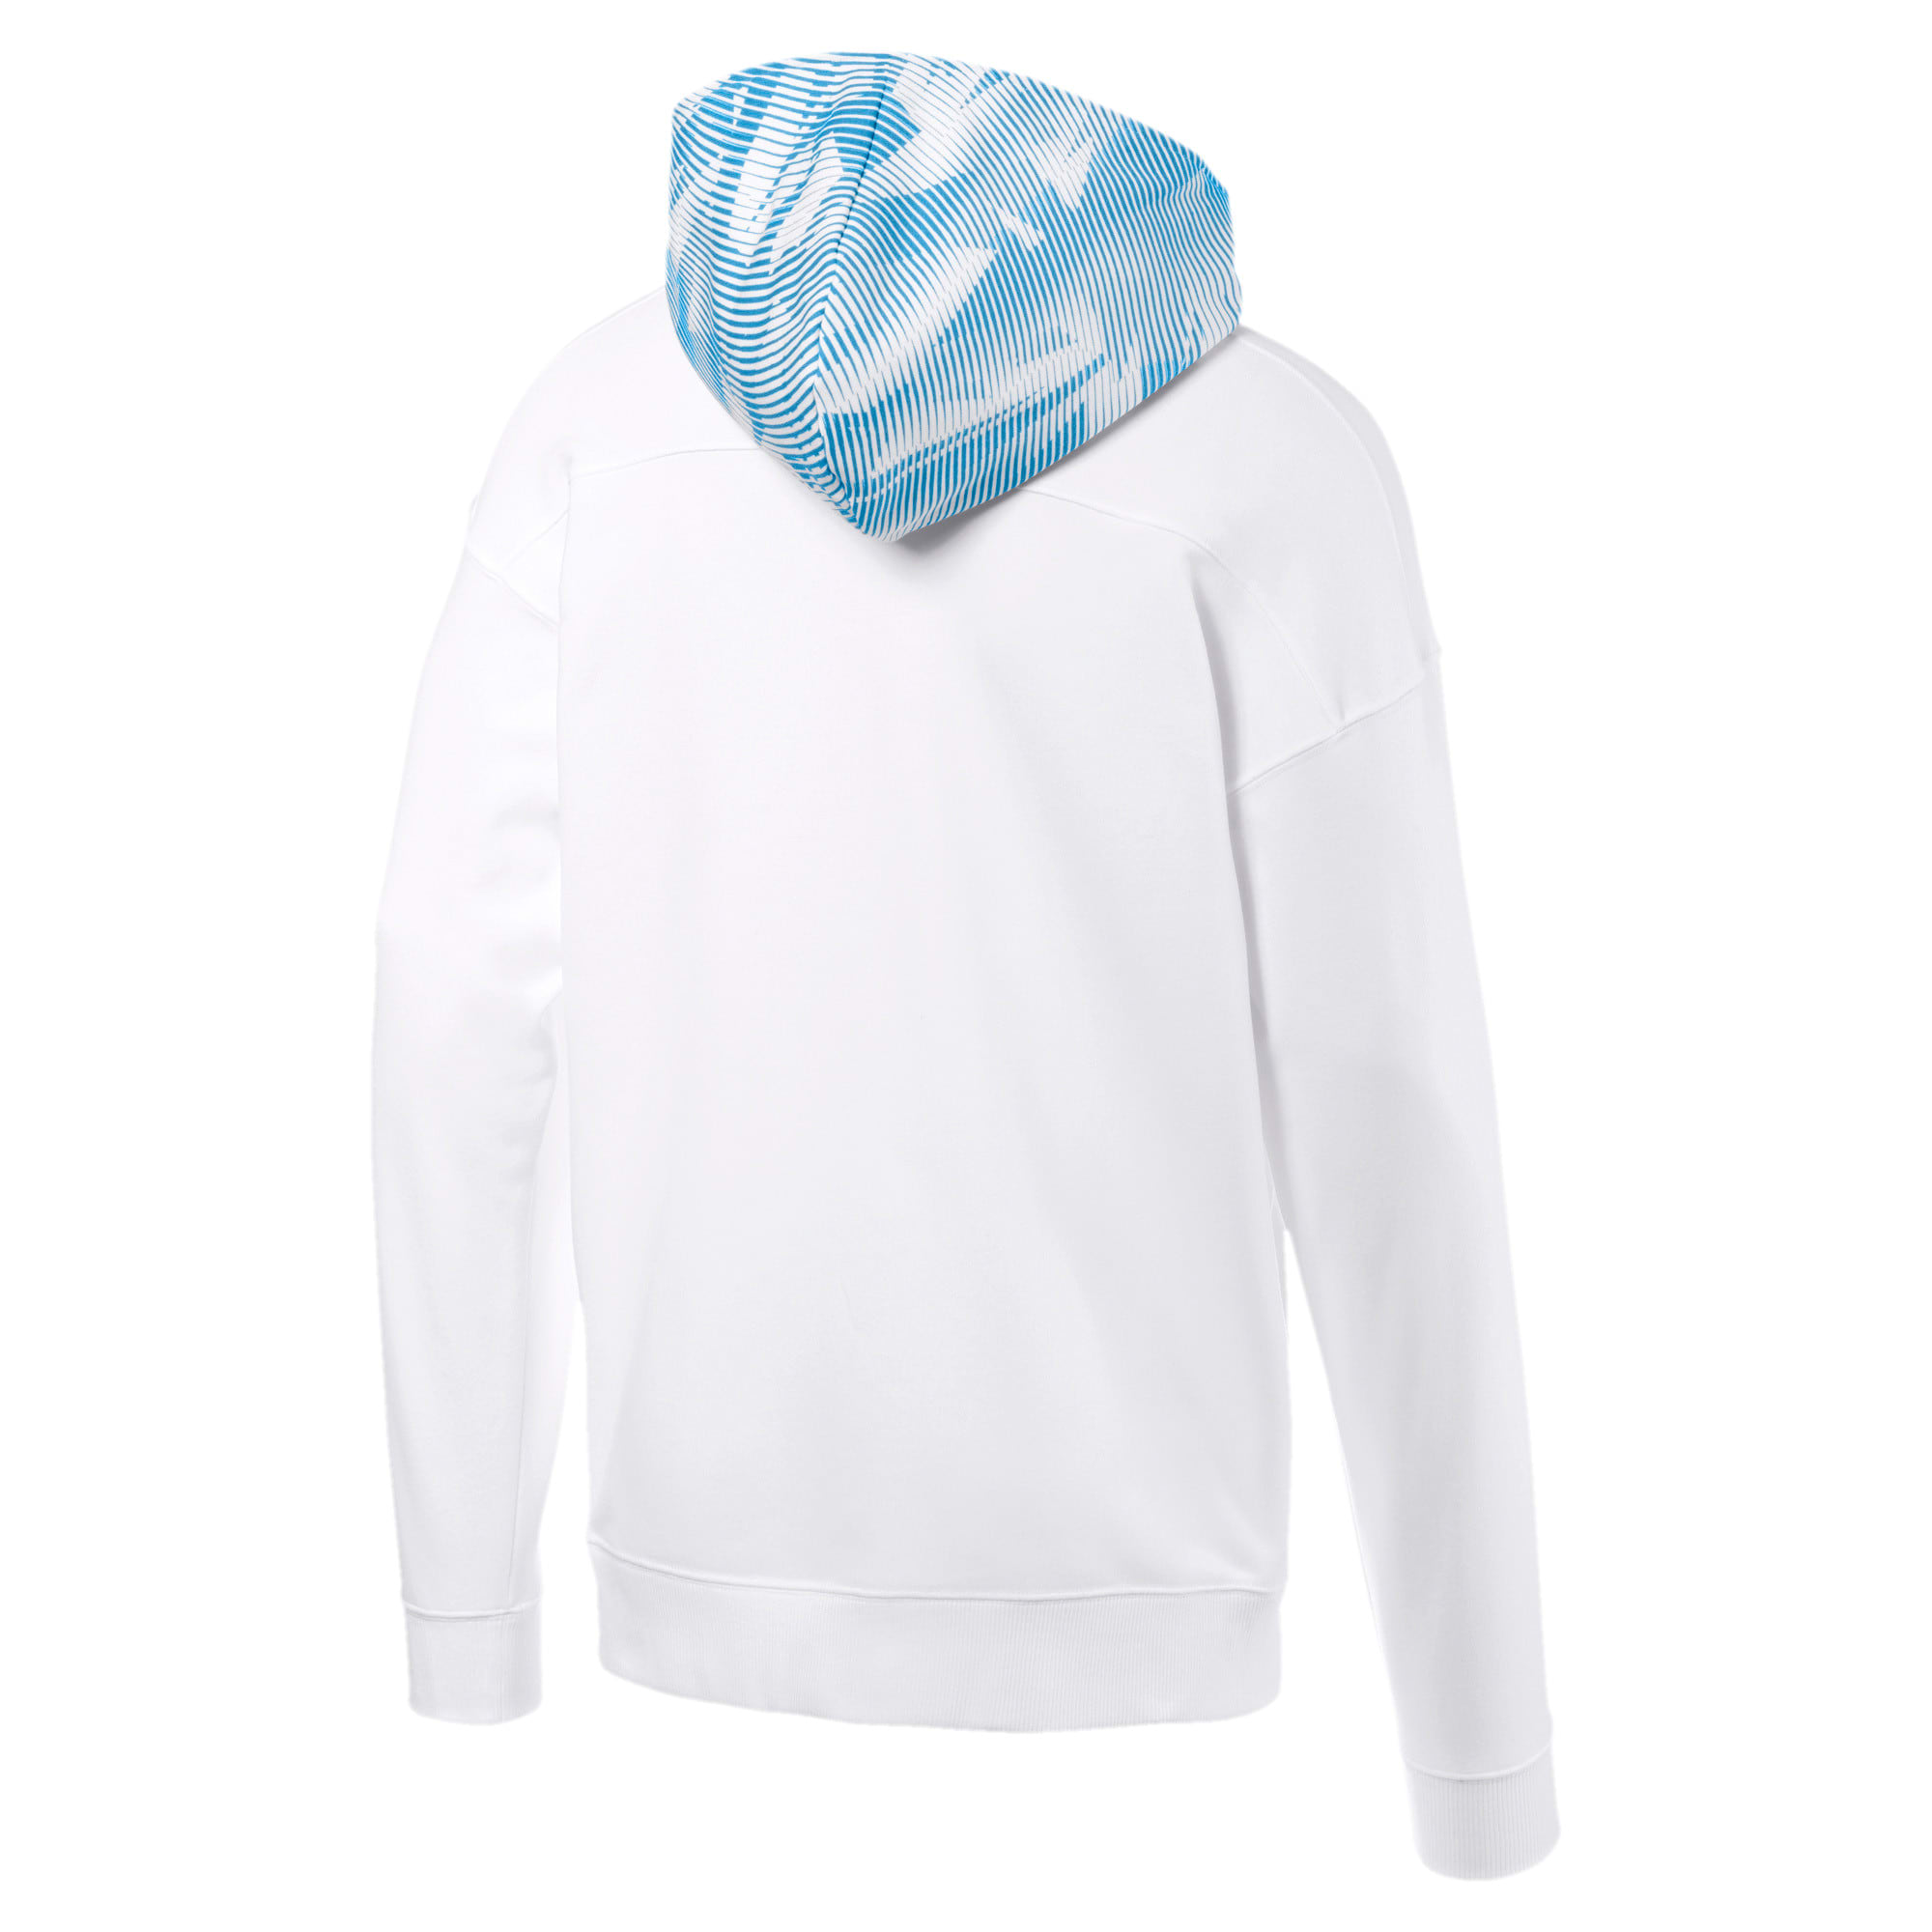 Thumbnail 5 of Olympique de Marseille Casuals Men's Zipped Hoodie, Puma White-Bleu Azur, medium